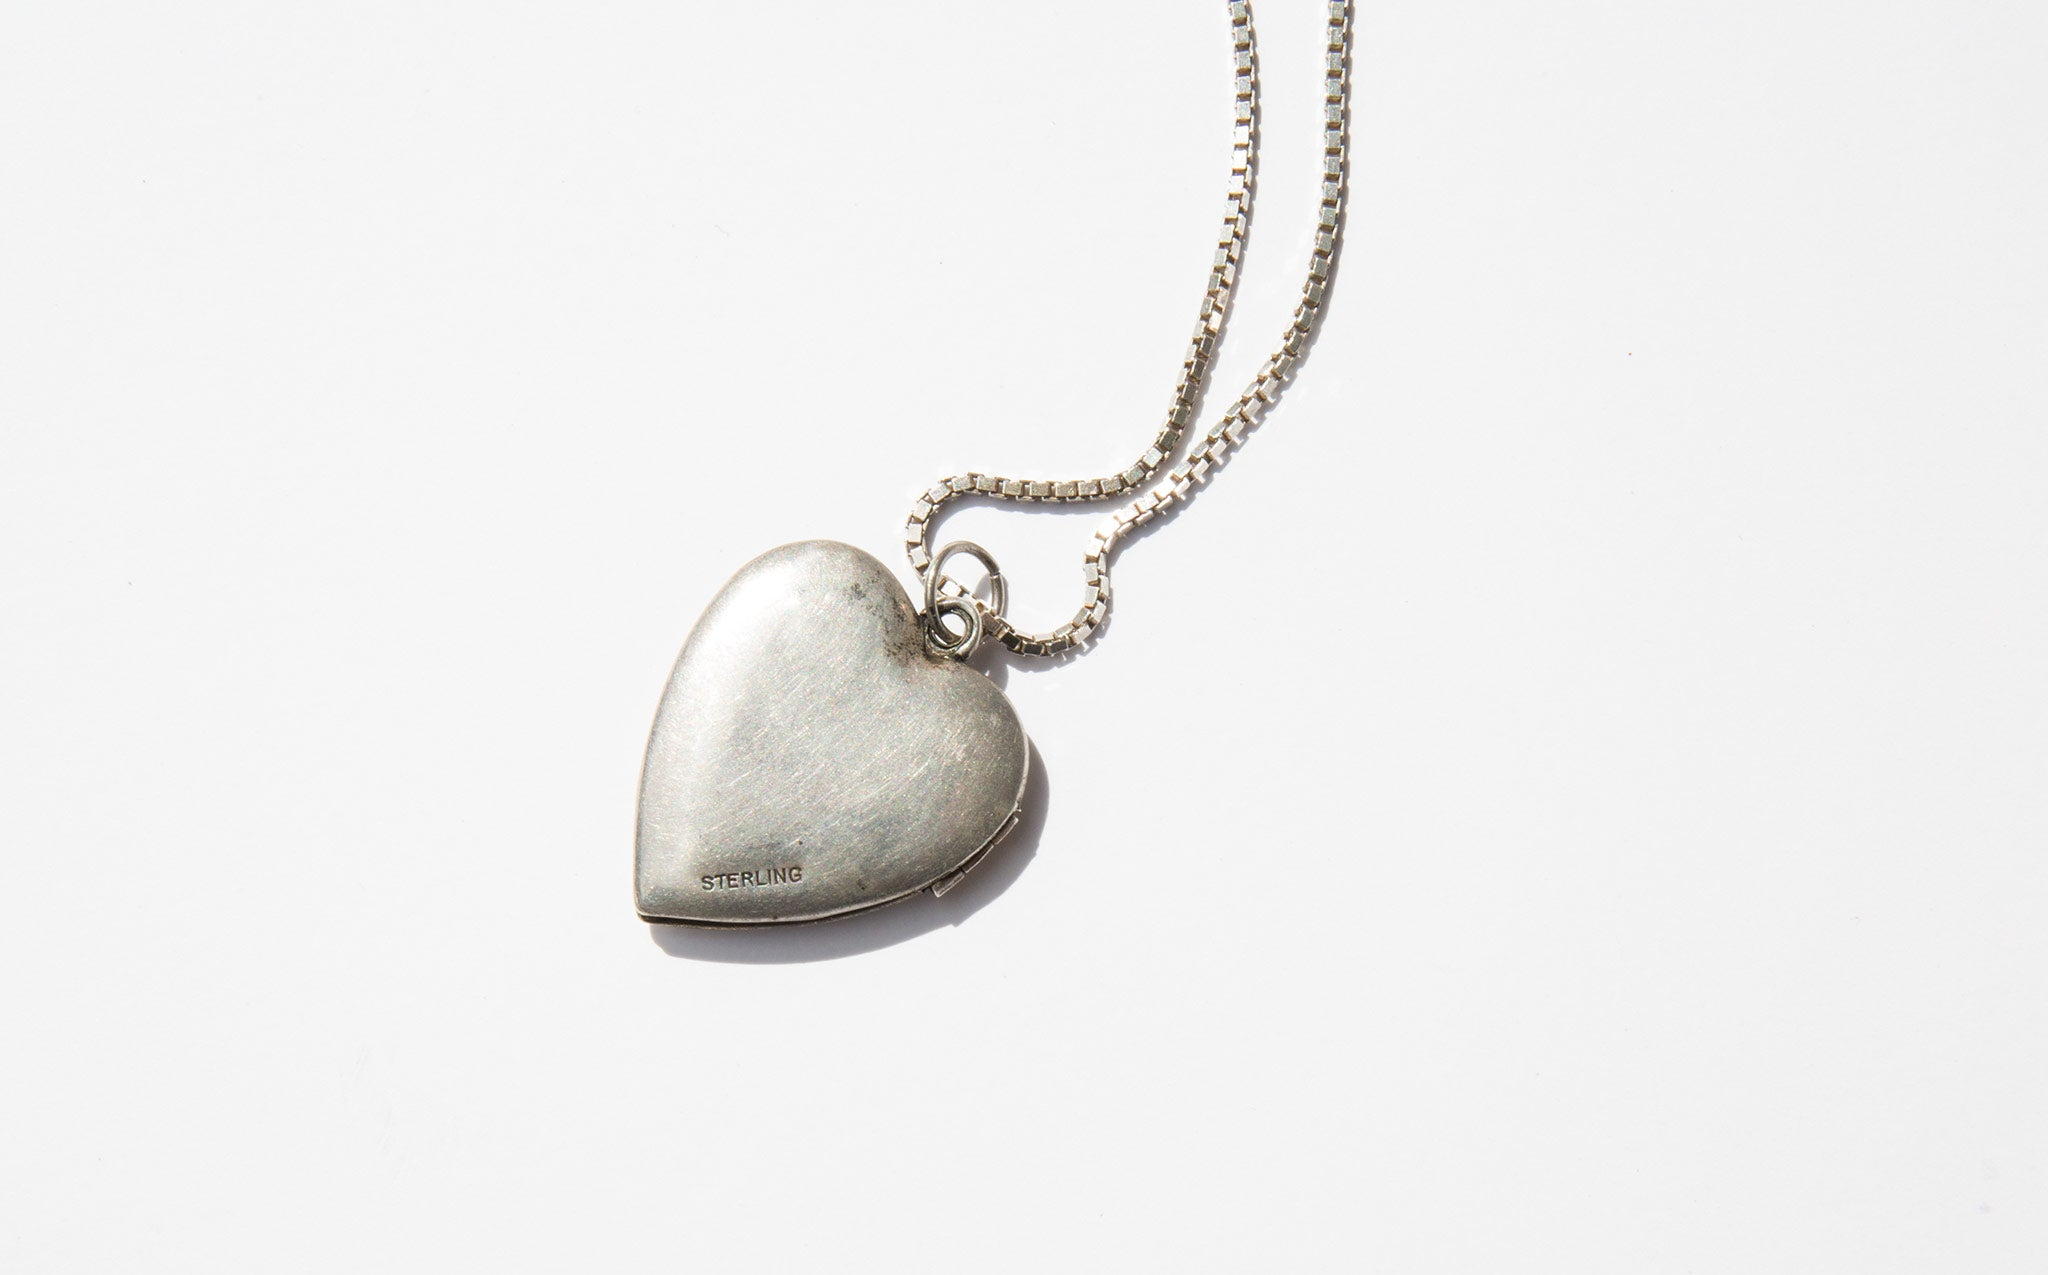 Vintage Sterling Heart Charm Necklace